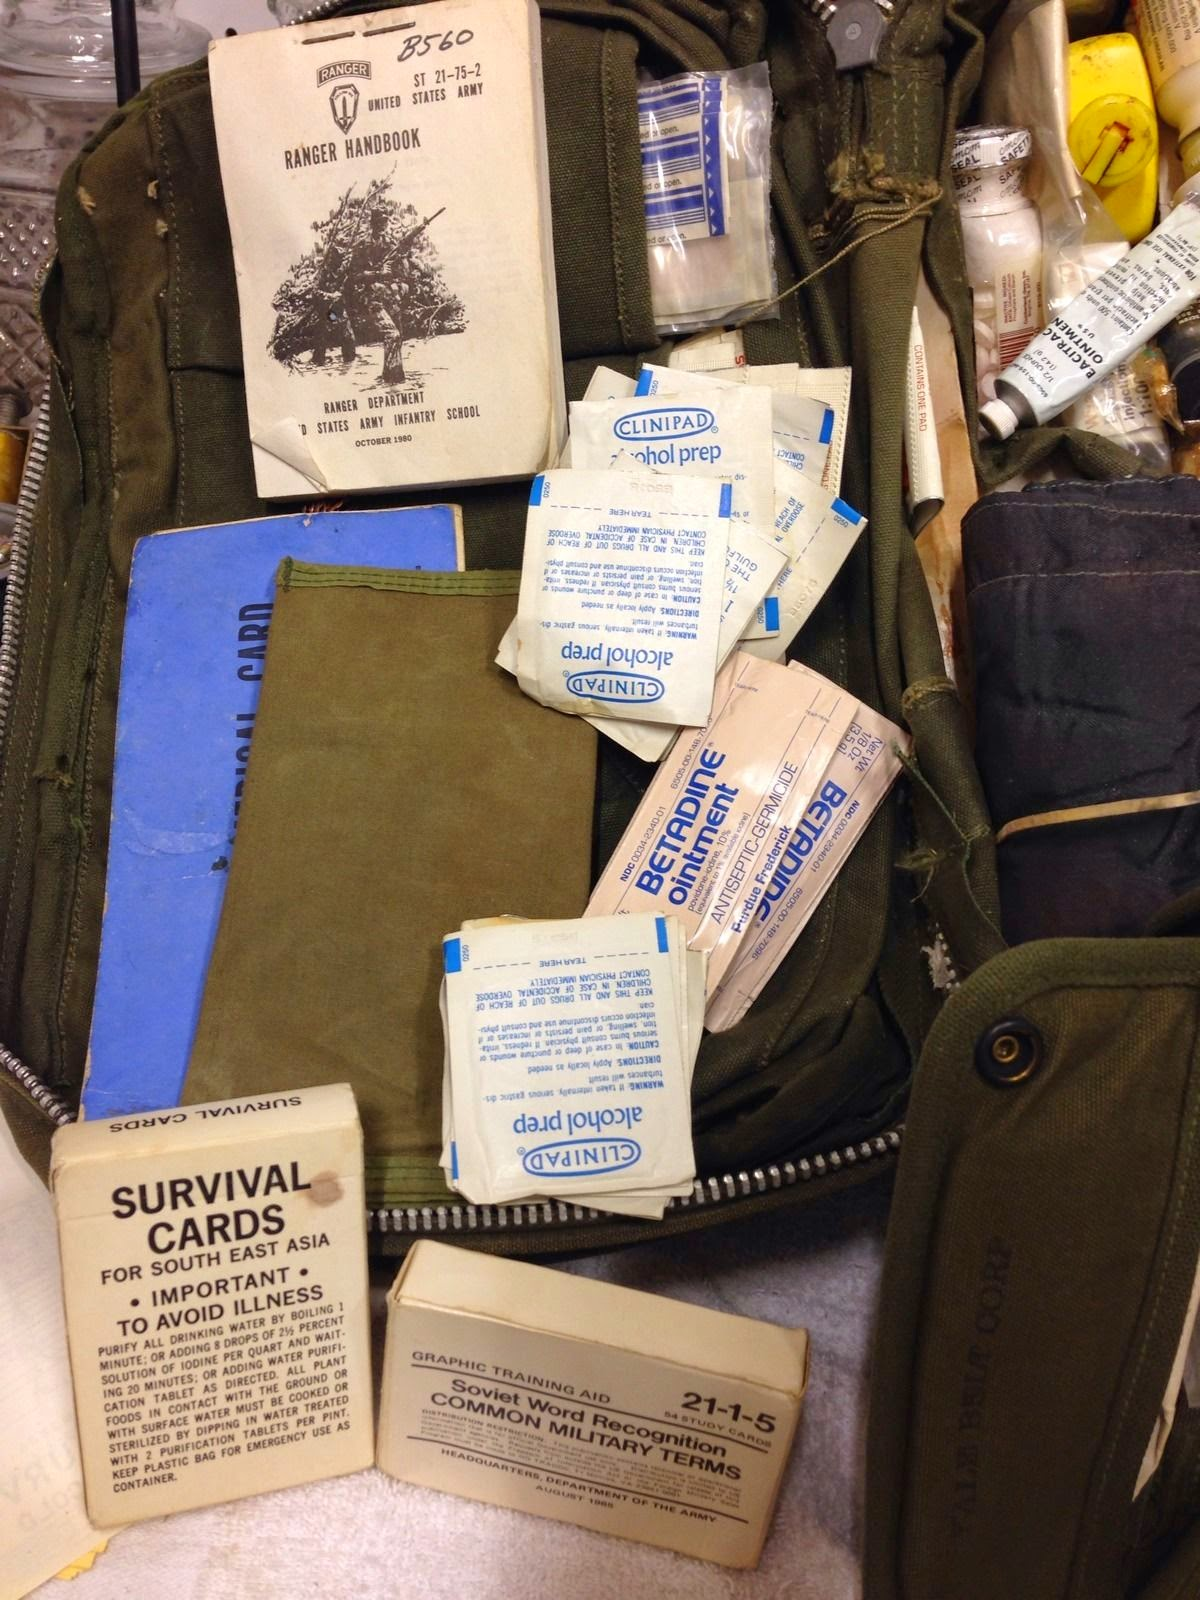 webbingbabel  us army m5 medical platoon bag contents late